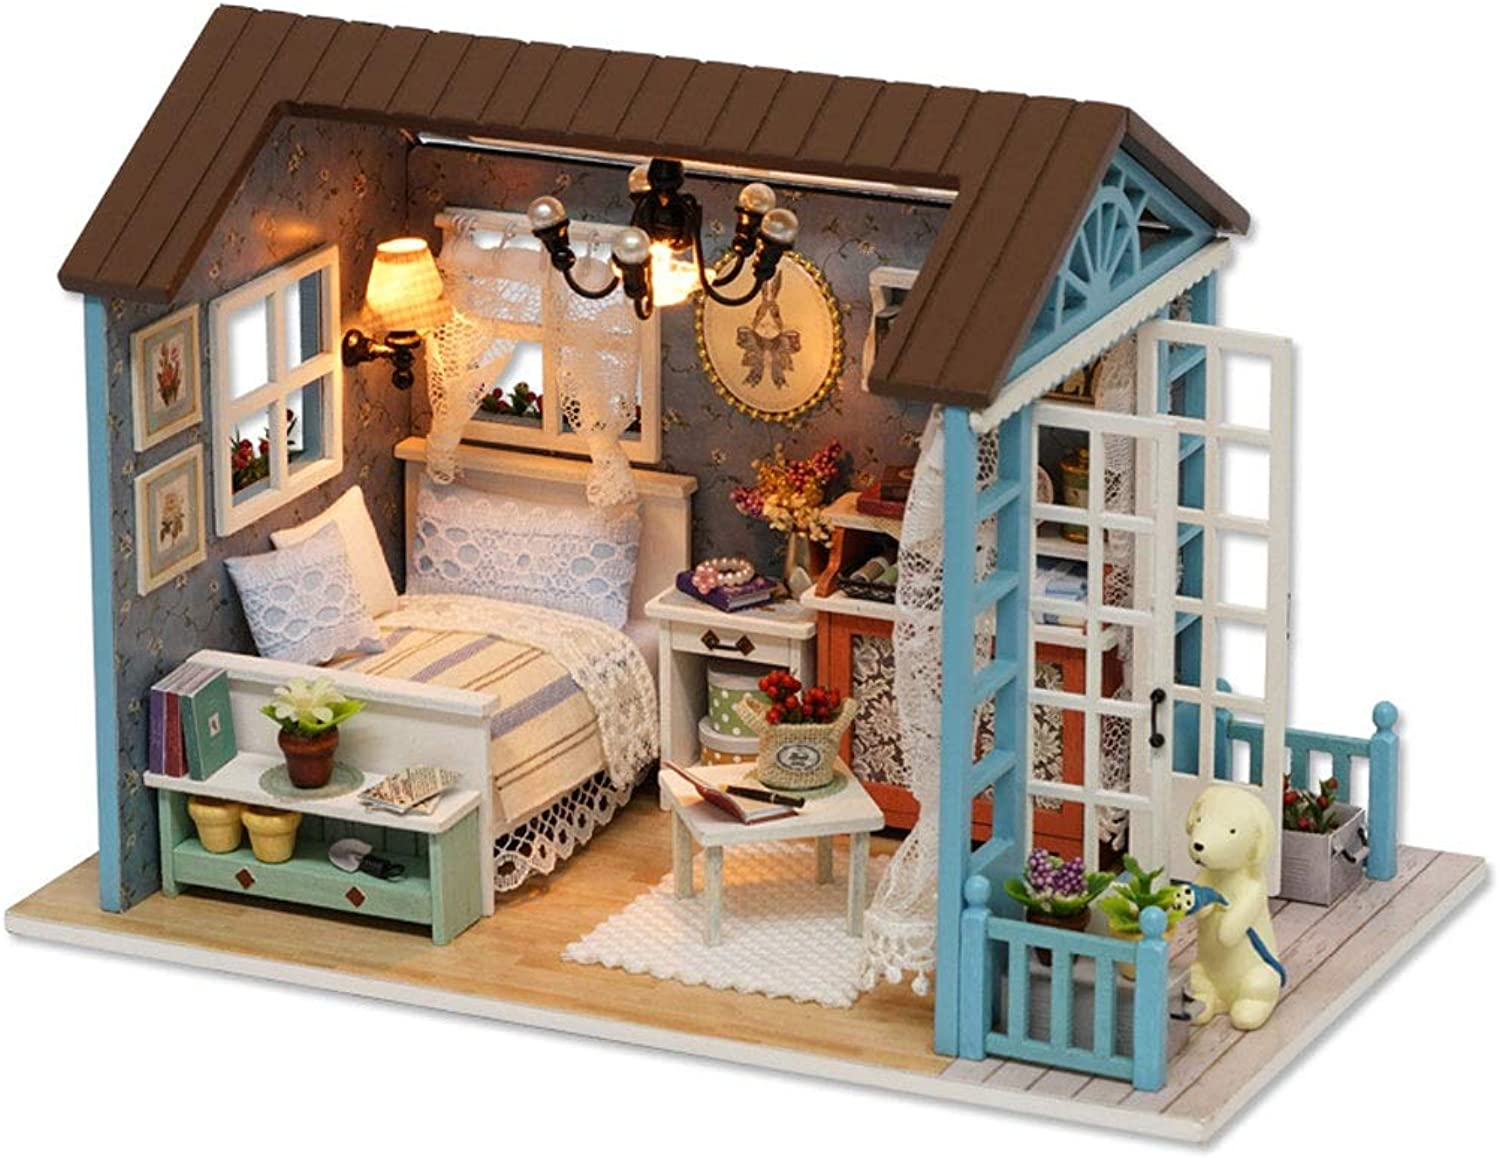 Excellent House Miniature Dollhouse Kit Diy Time Bluee Sen Gift Download Free Architecture Designs Viewormadebymaigaardcom